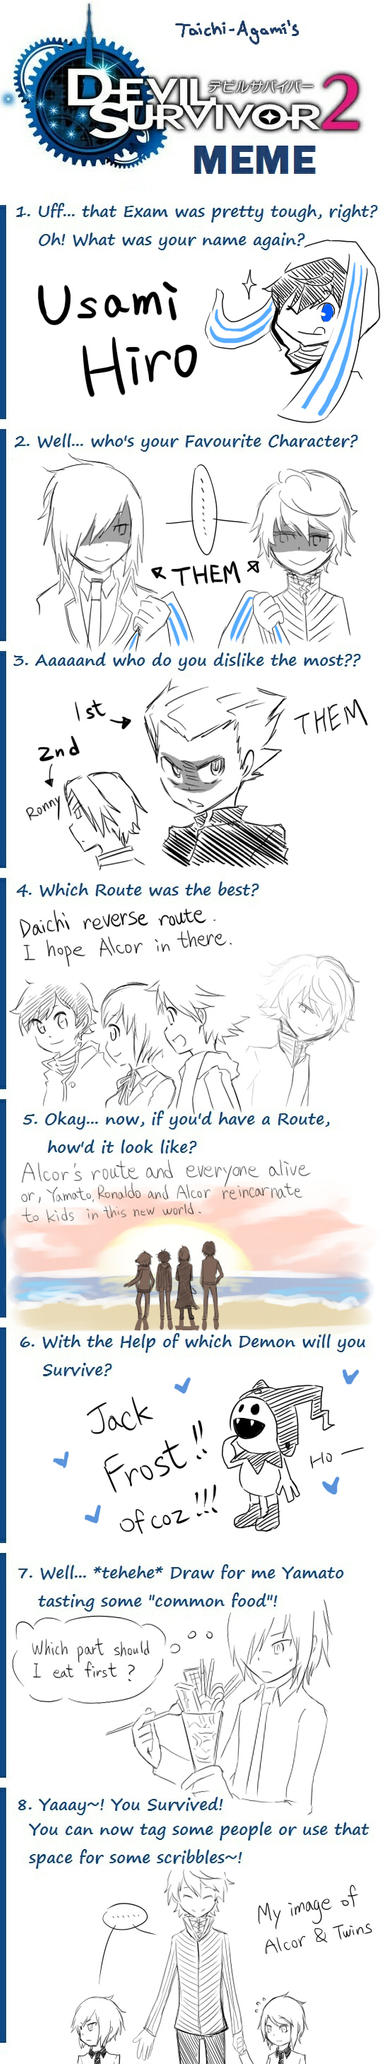 Devil Survivor 2 Meme by KoujiT